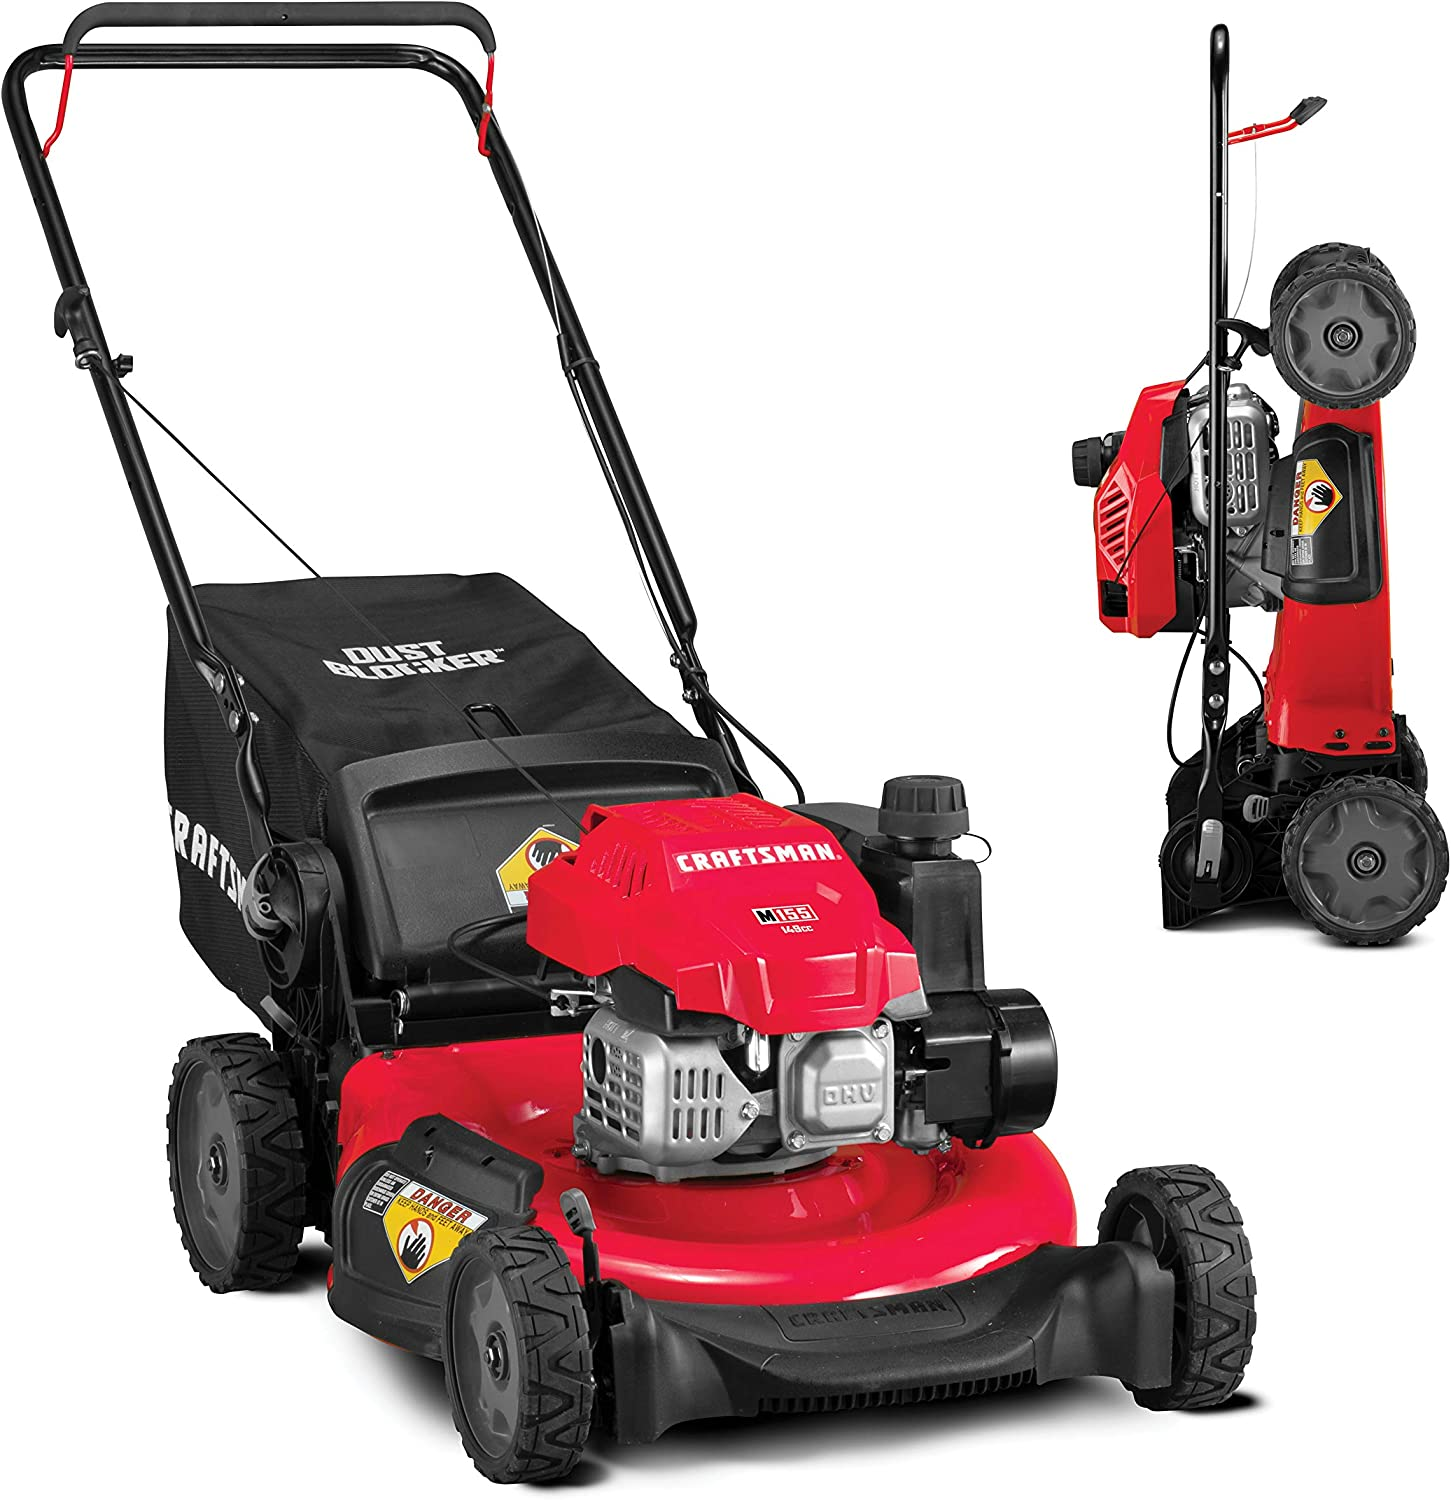 CRAFTSMAN 3-in-1 149cc Engine Gas Powered Push Lawn Mower